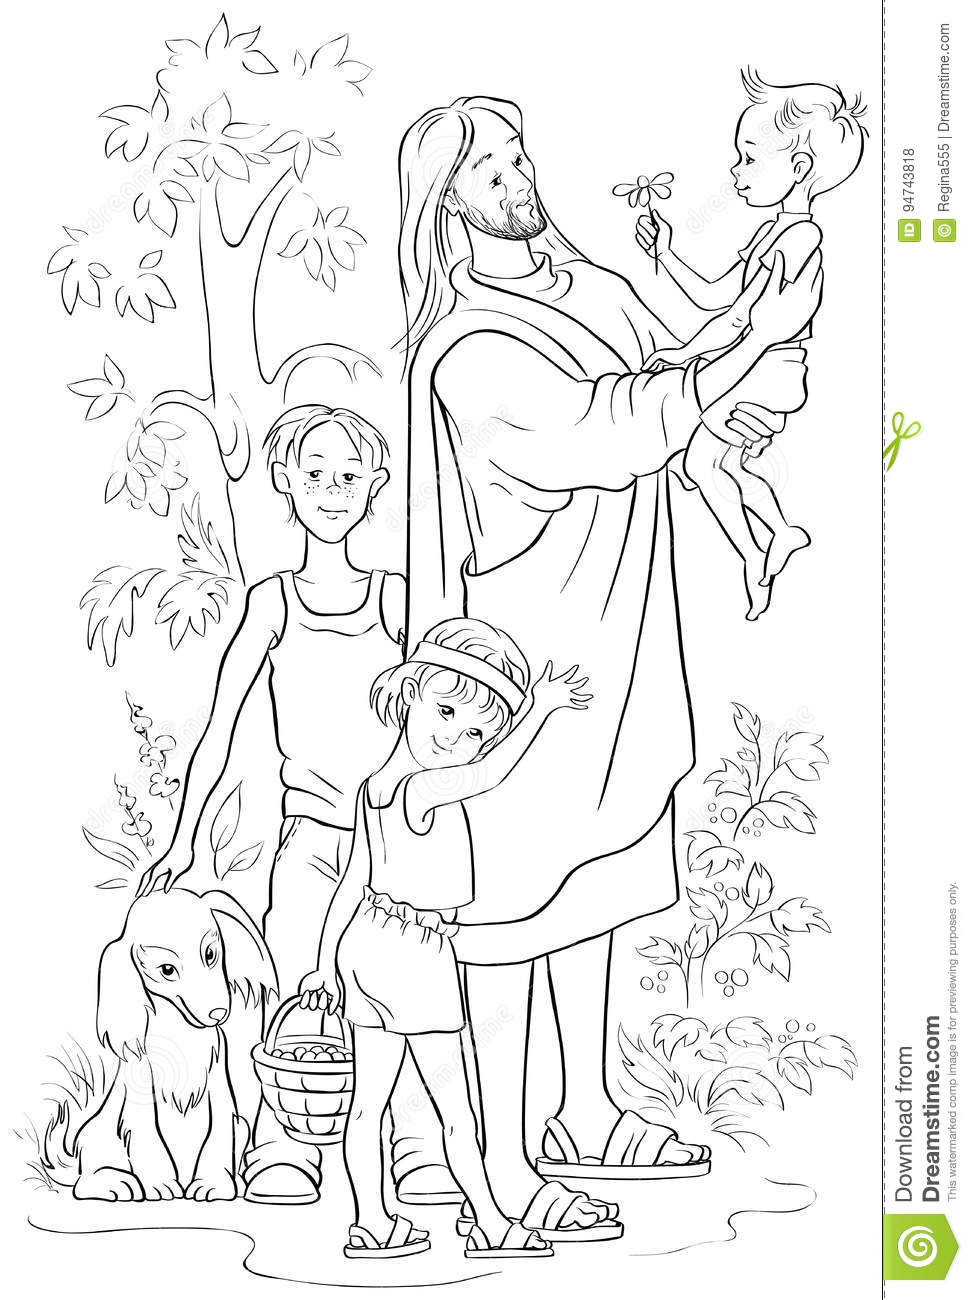 Jesus With Children. Coloring Page Stock Vector - Illustration of ...